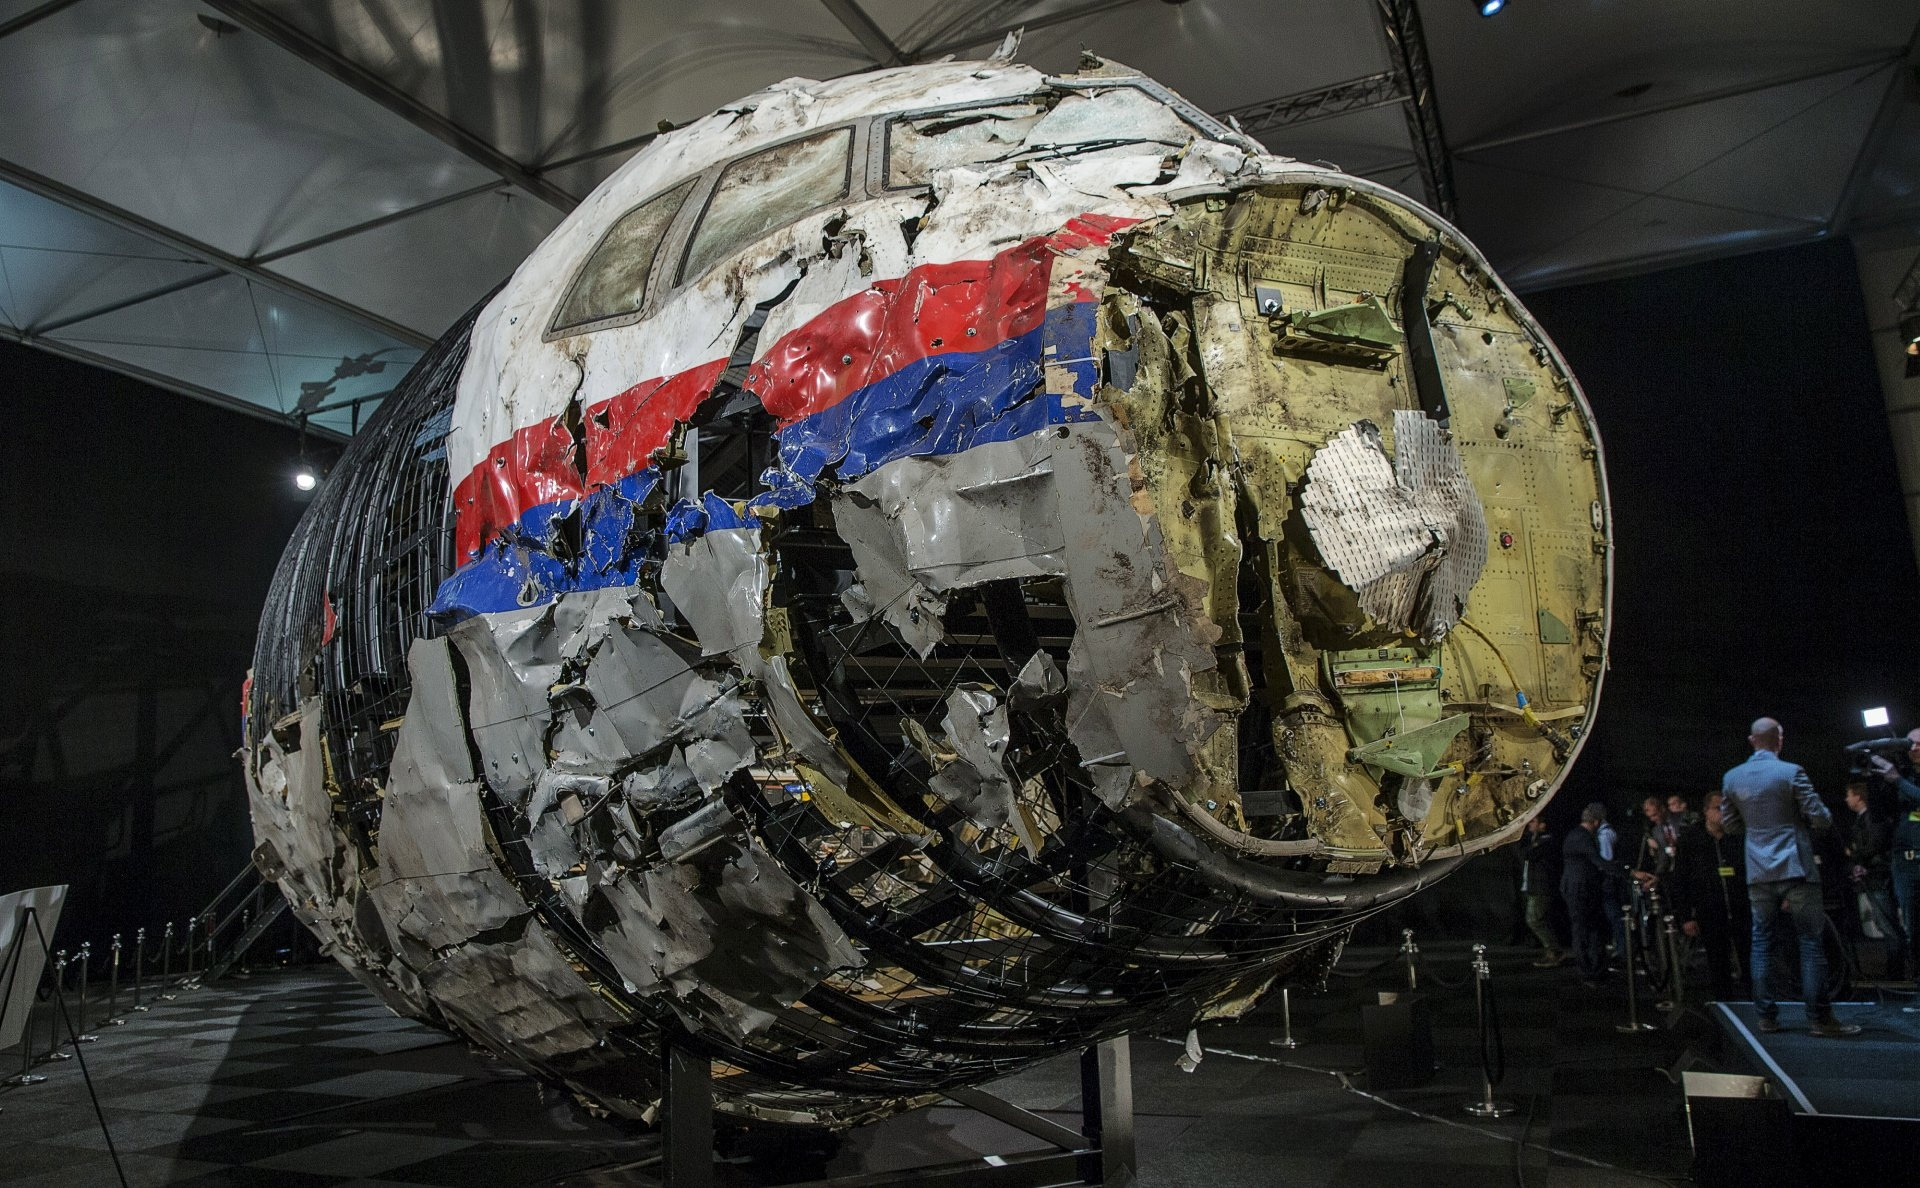 In the Netherlands, the preparatory hearing for MH17 is ongoing